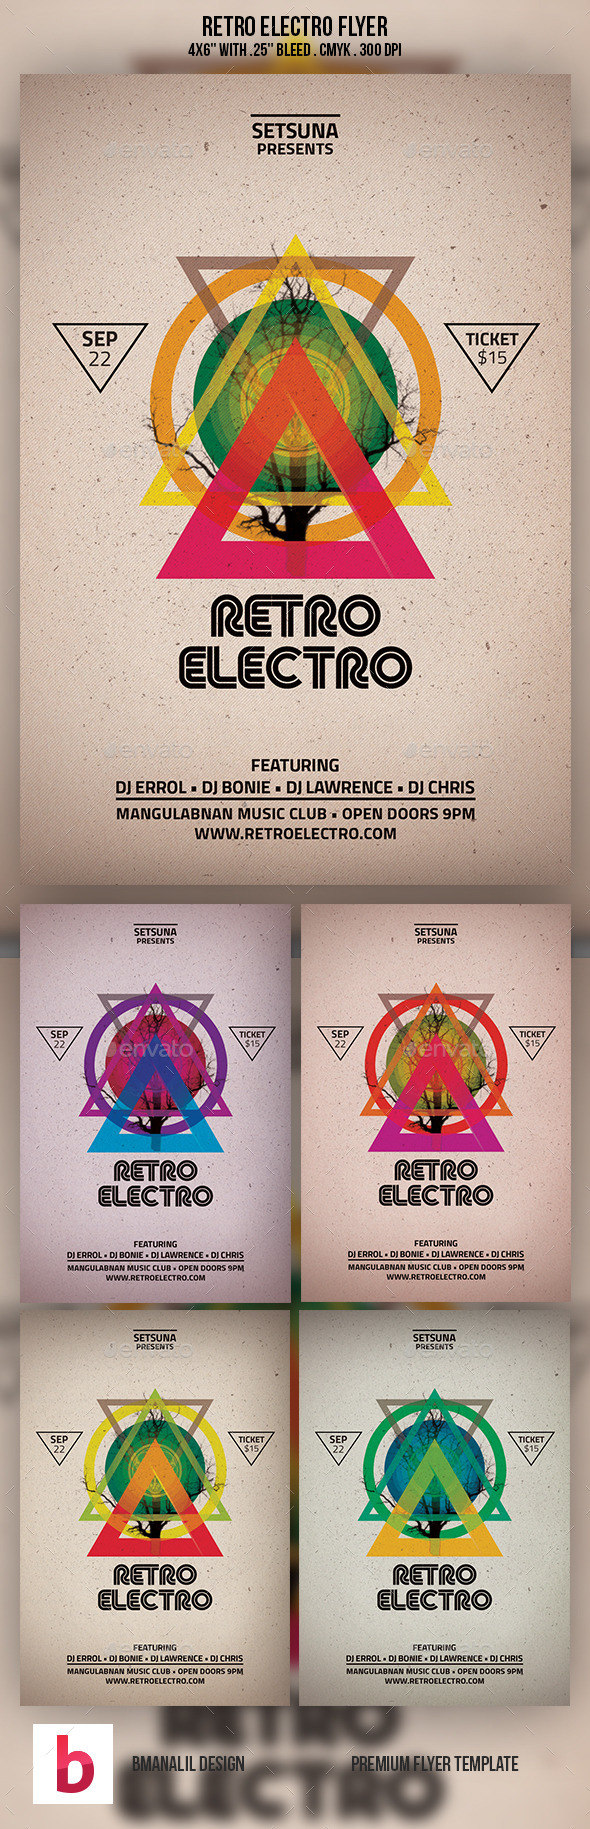 Retro Electro Flyer - Clubs & Parties Events